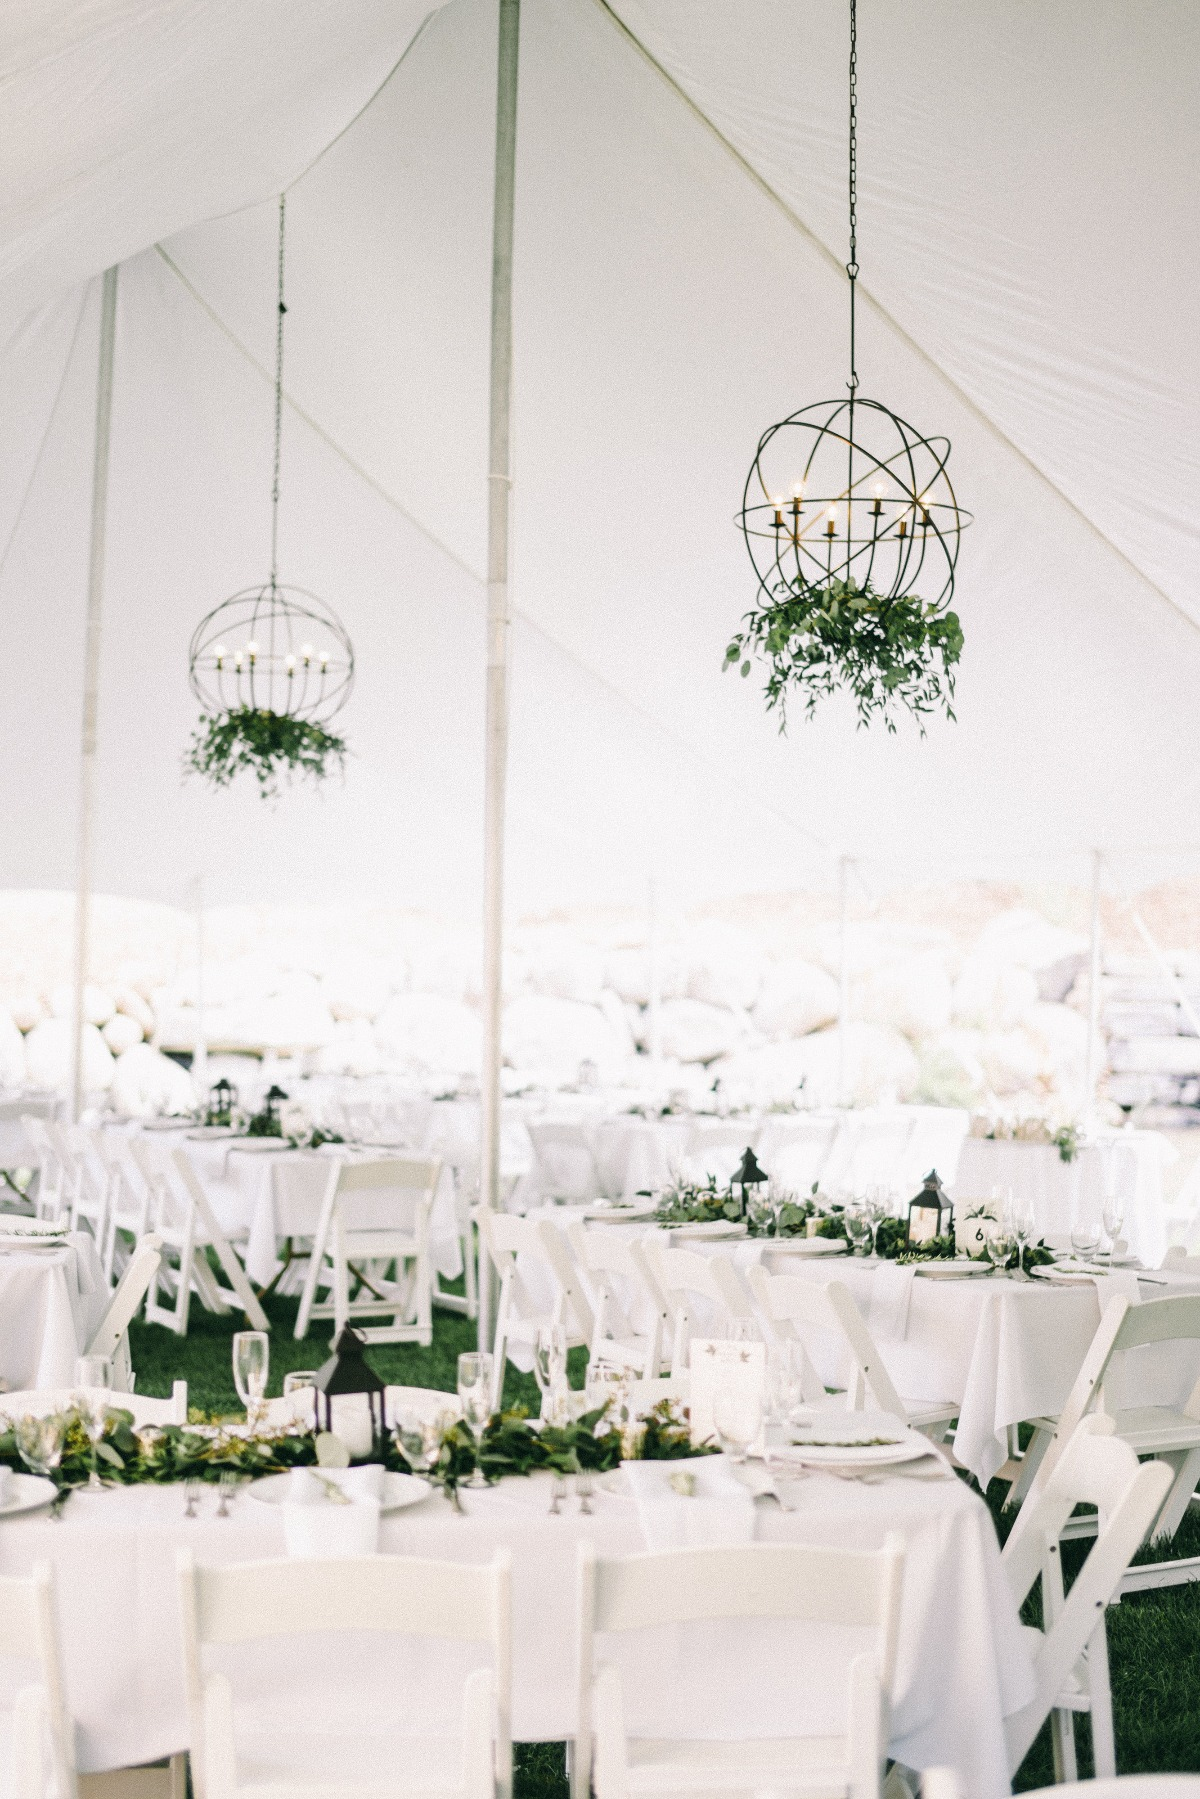 Natural chic tent reception